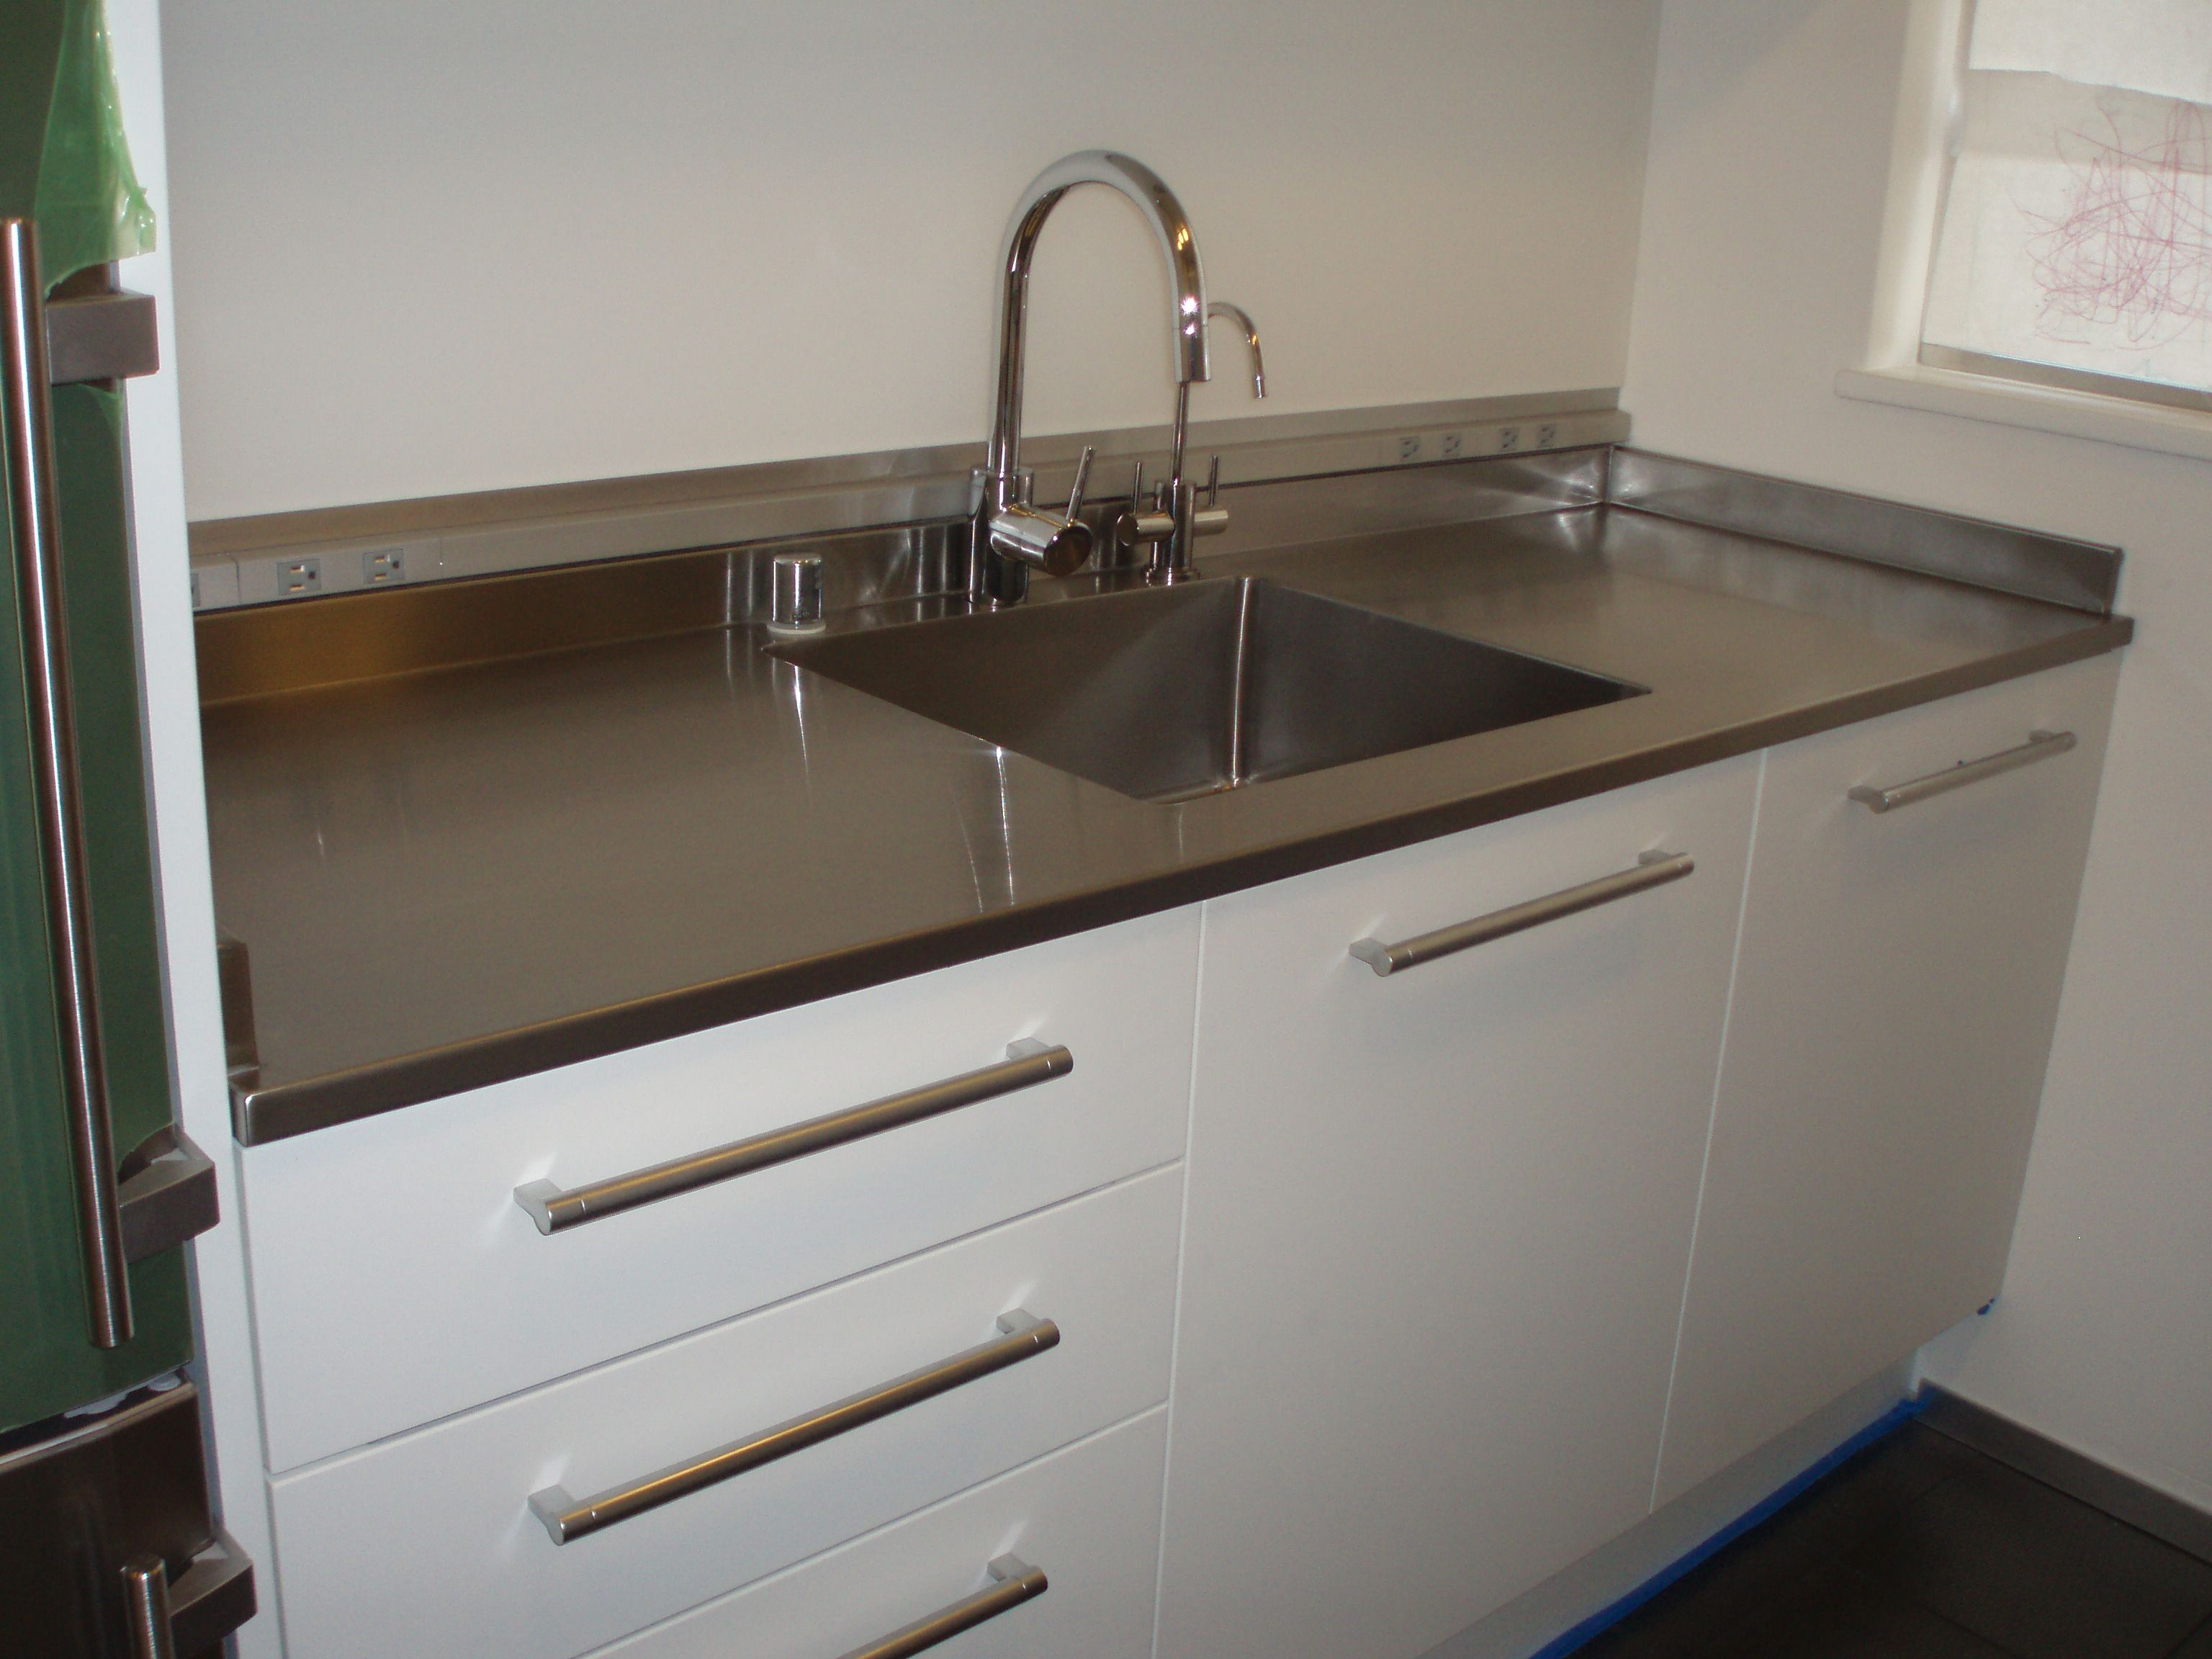 Seamless Counter With Seamless Sink Incorporated 1 Lip Drop Back Side Splash To